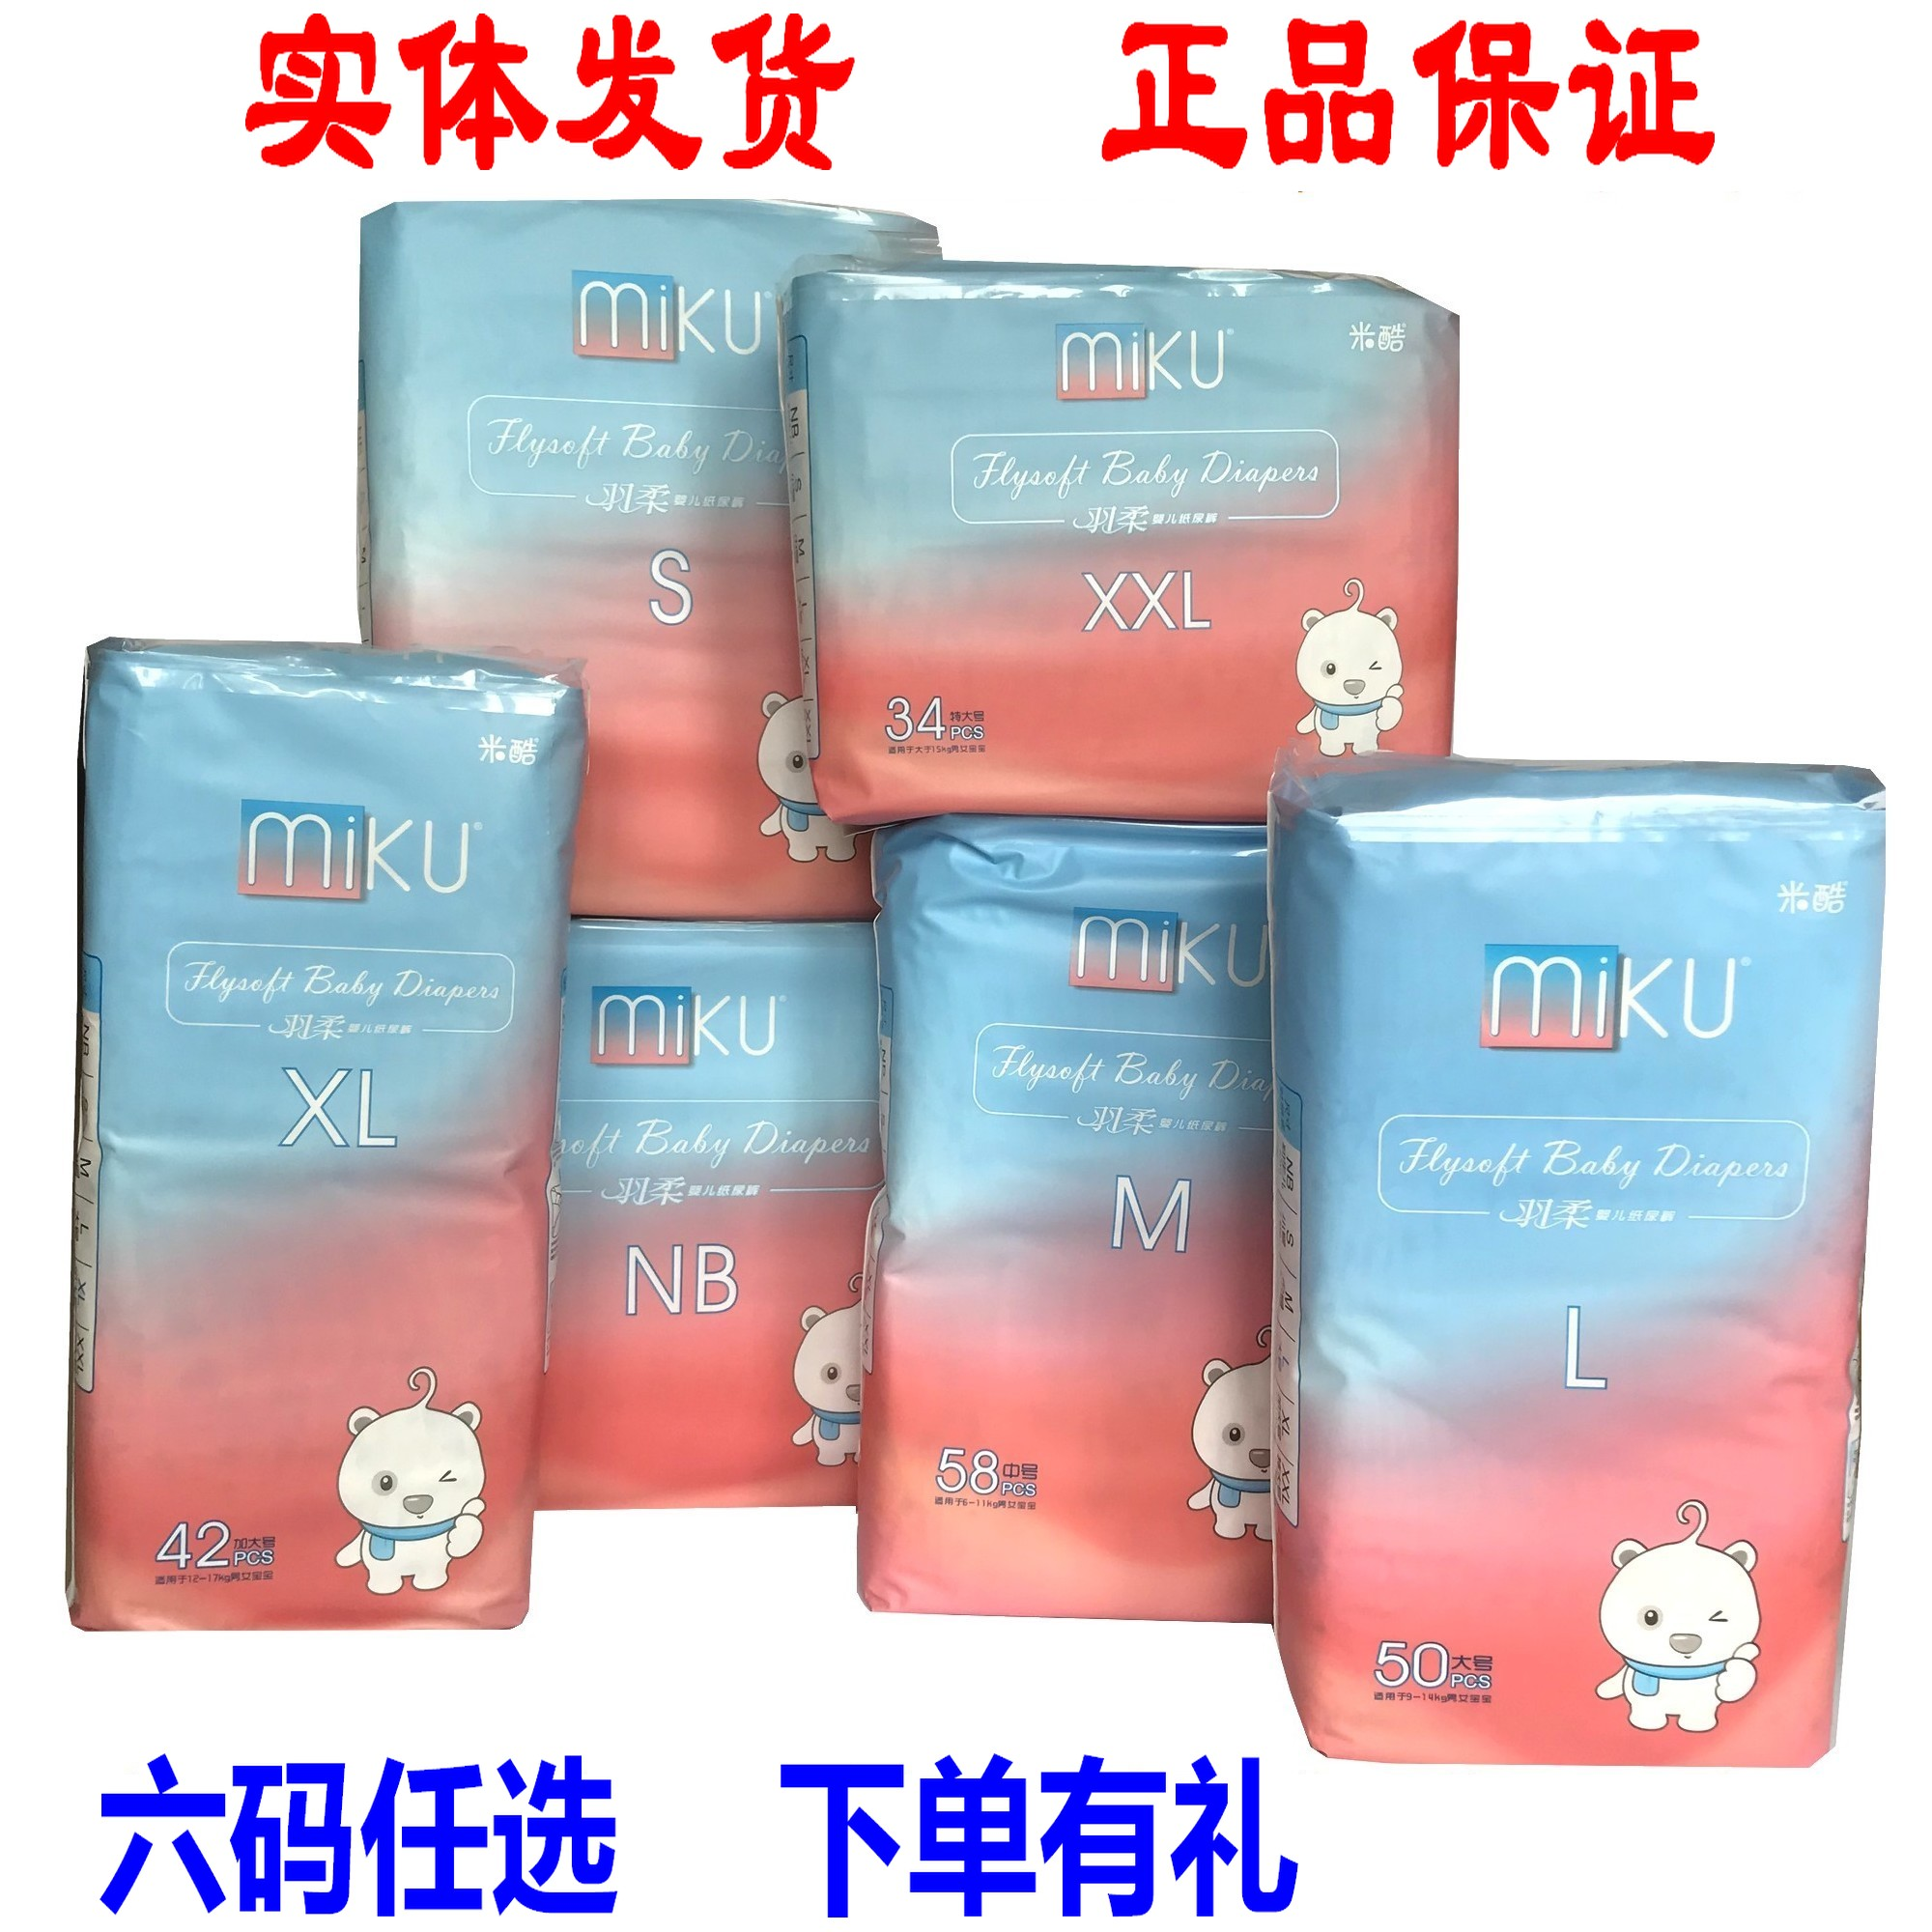 Mikou Yurou Diaper Baby Diaper diaper diaper super thin and breathable L lxlsm Size 6 optional